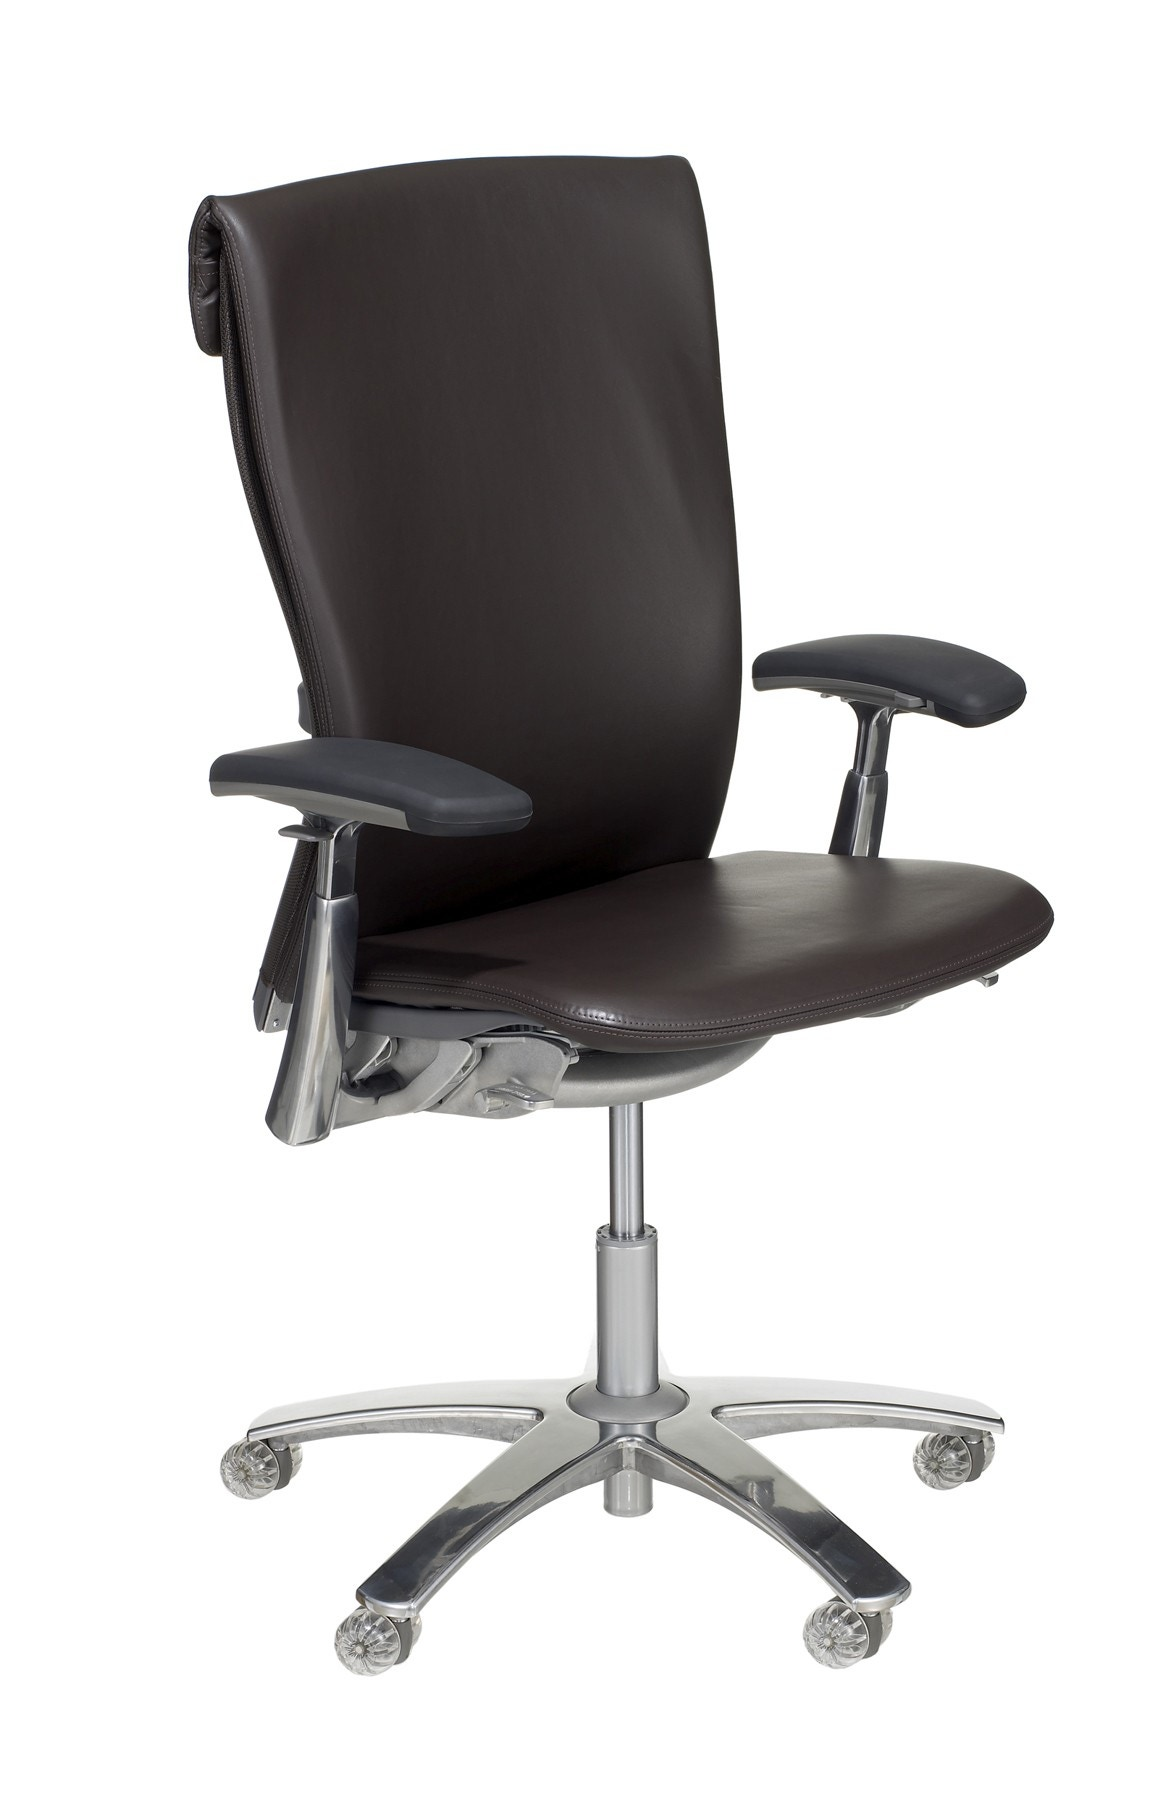 Knoll Life® Chair - Upholstered Back